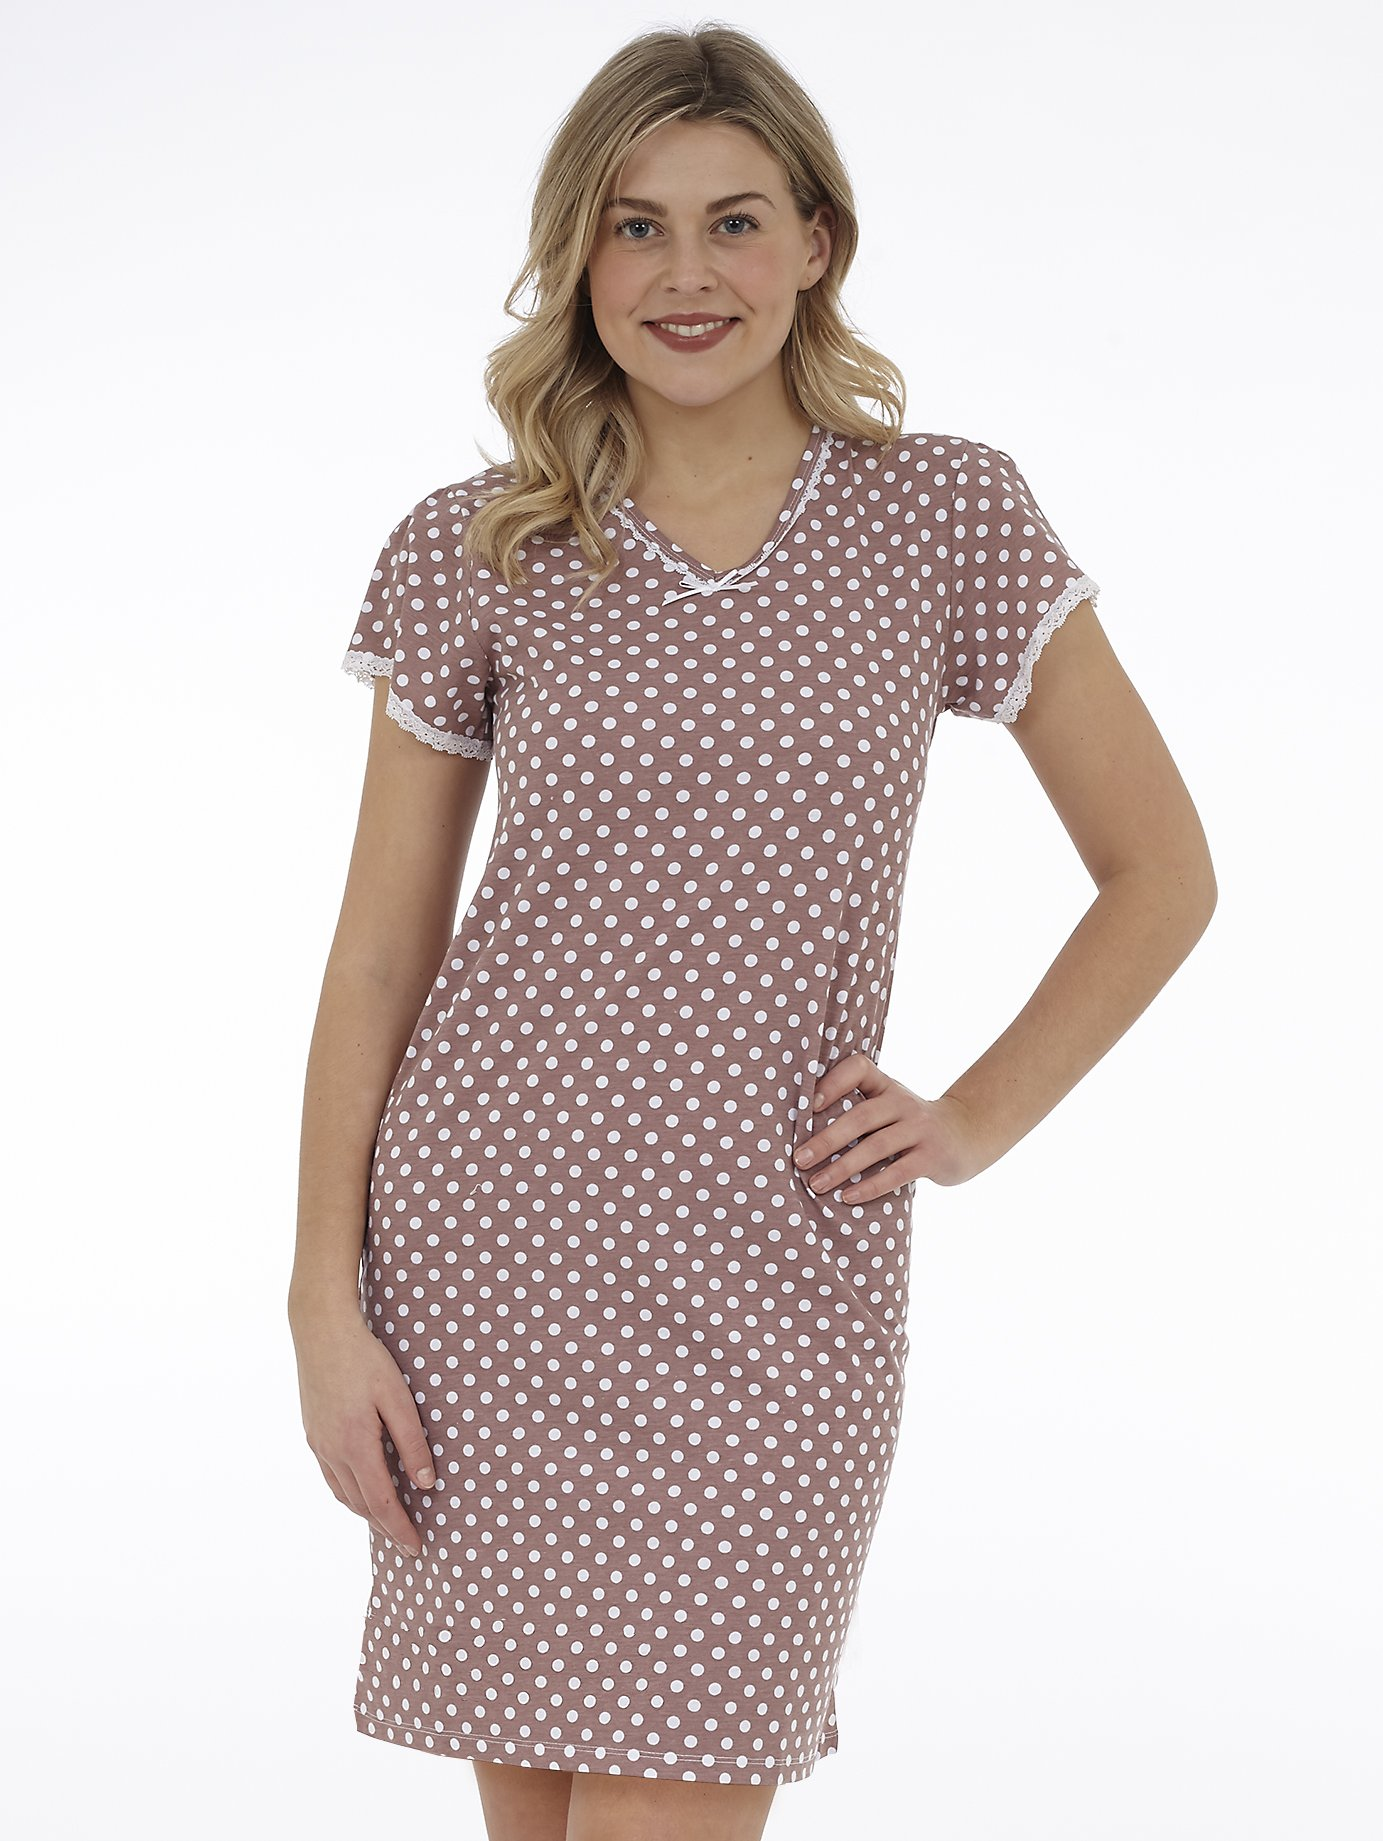 Short Sleeve Printed Nightgown with Lace Trim